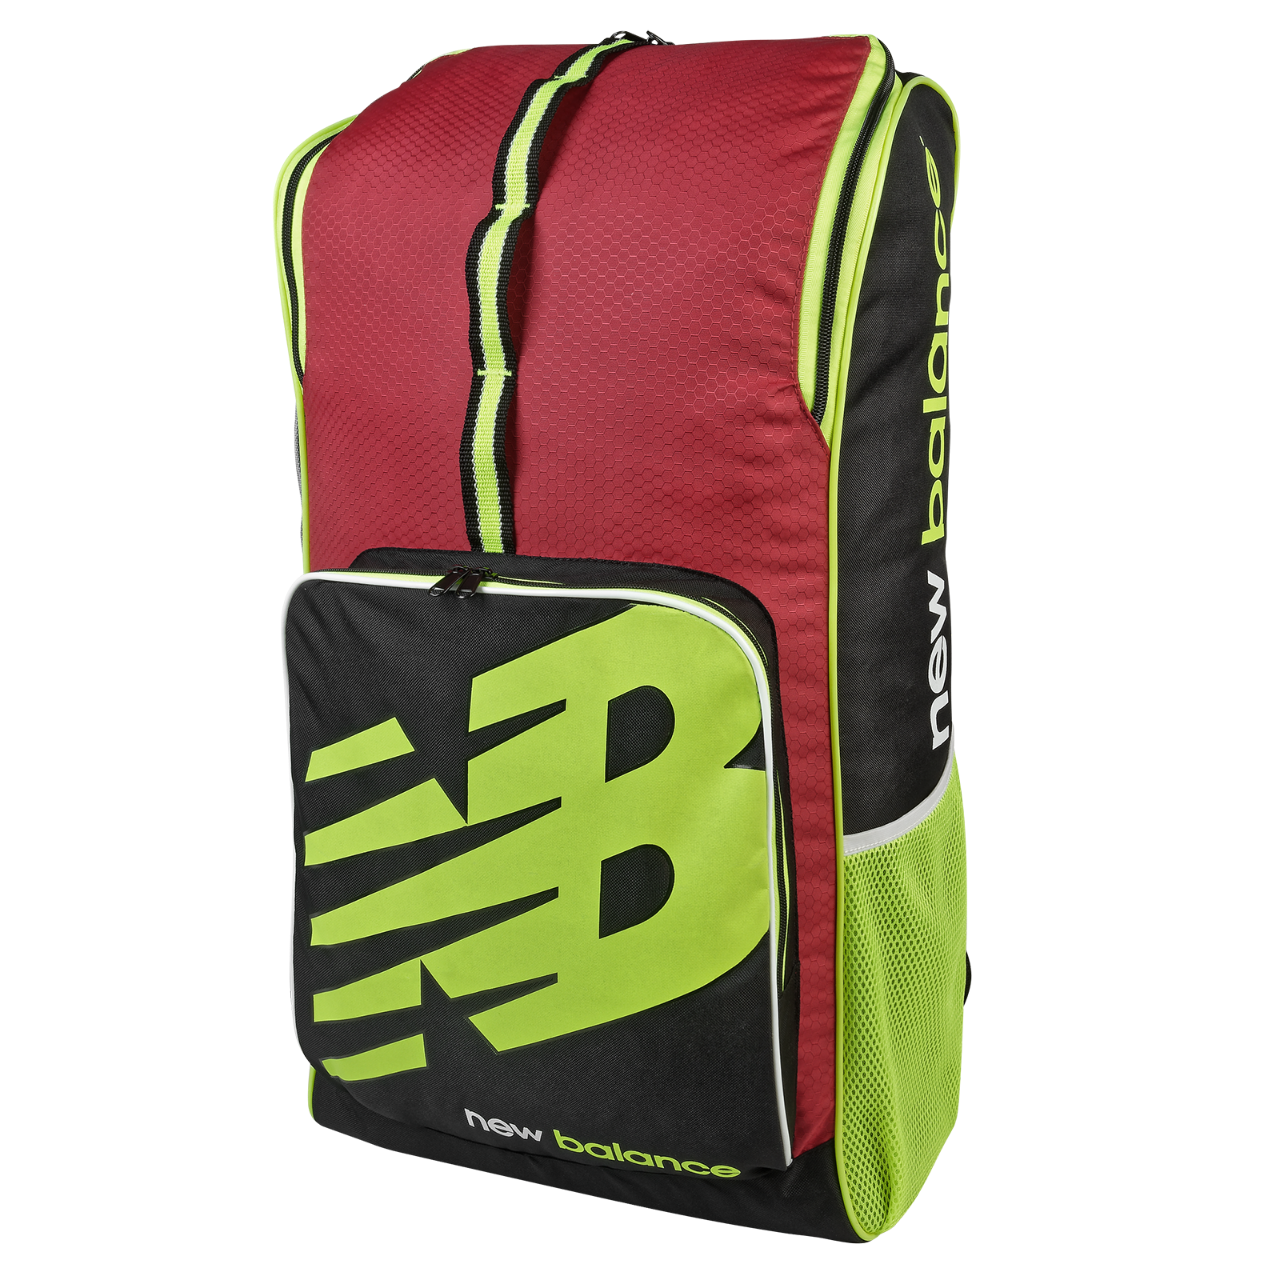 2021 New Balance TC 560 Duffle Cricket Bag